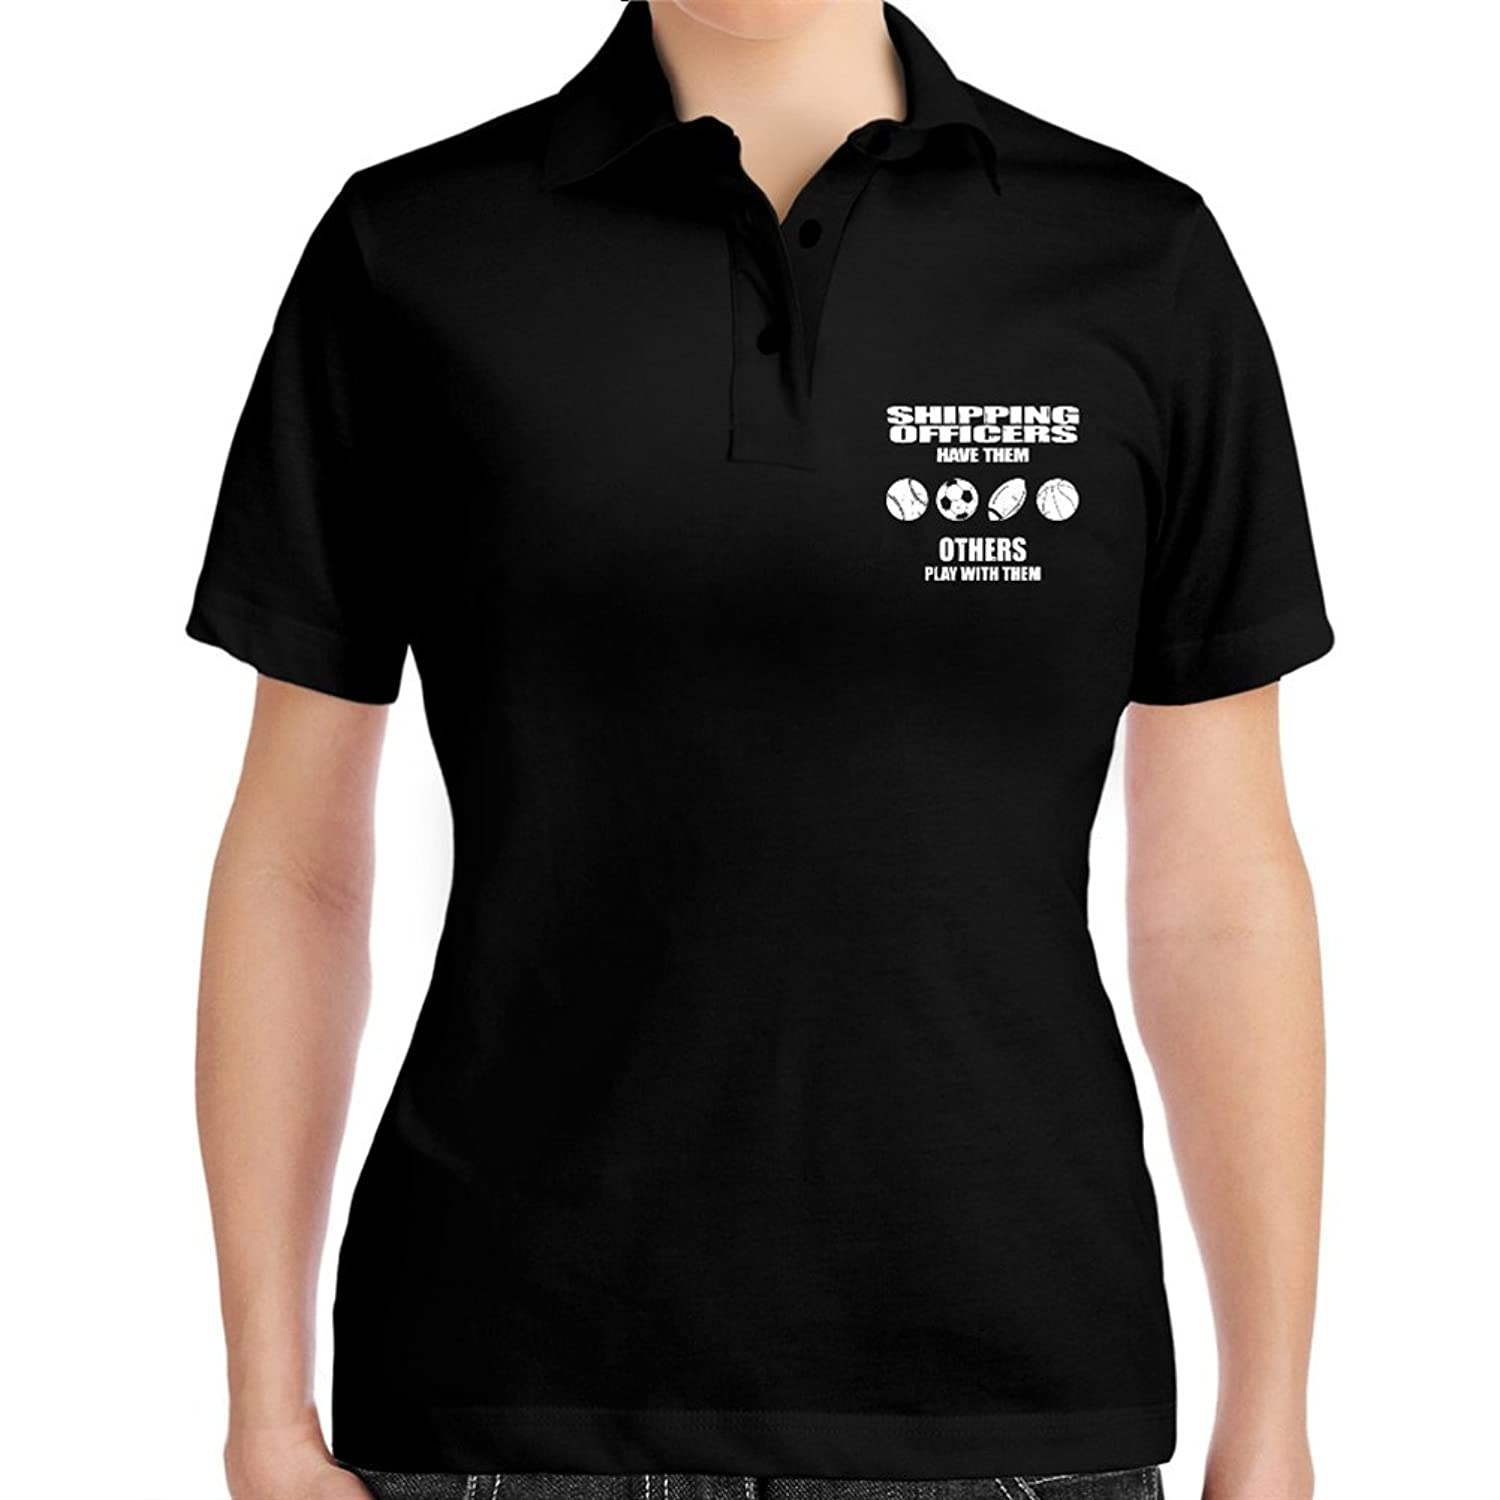 Shipping Officer have them others play with them Women Polo Shirt